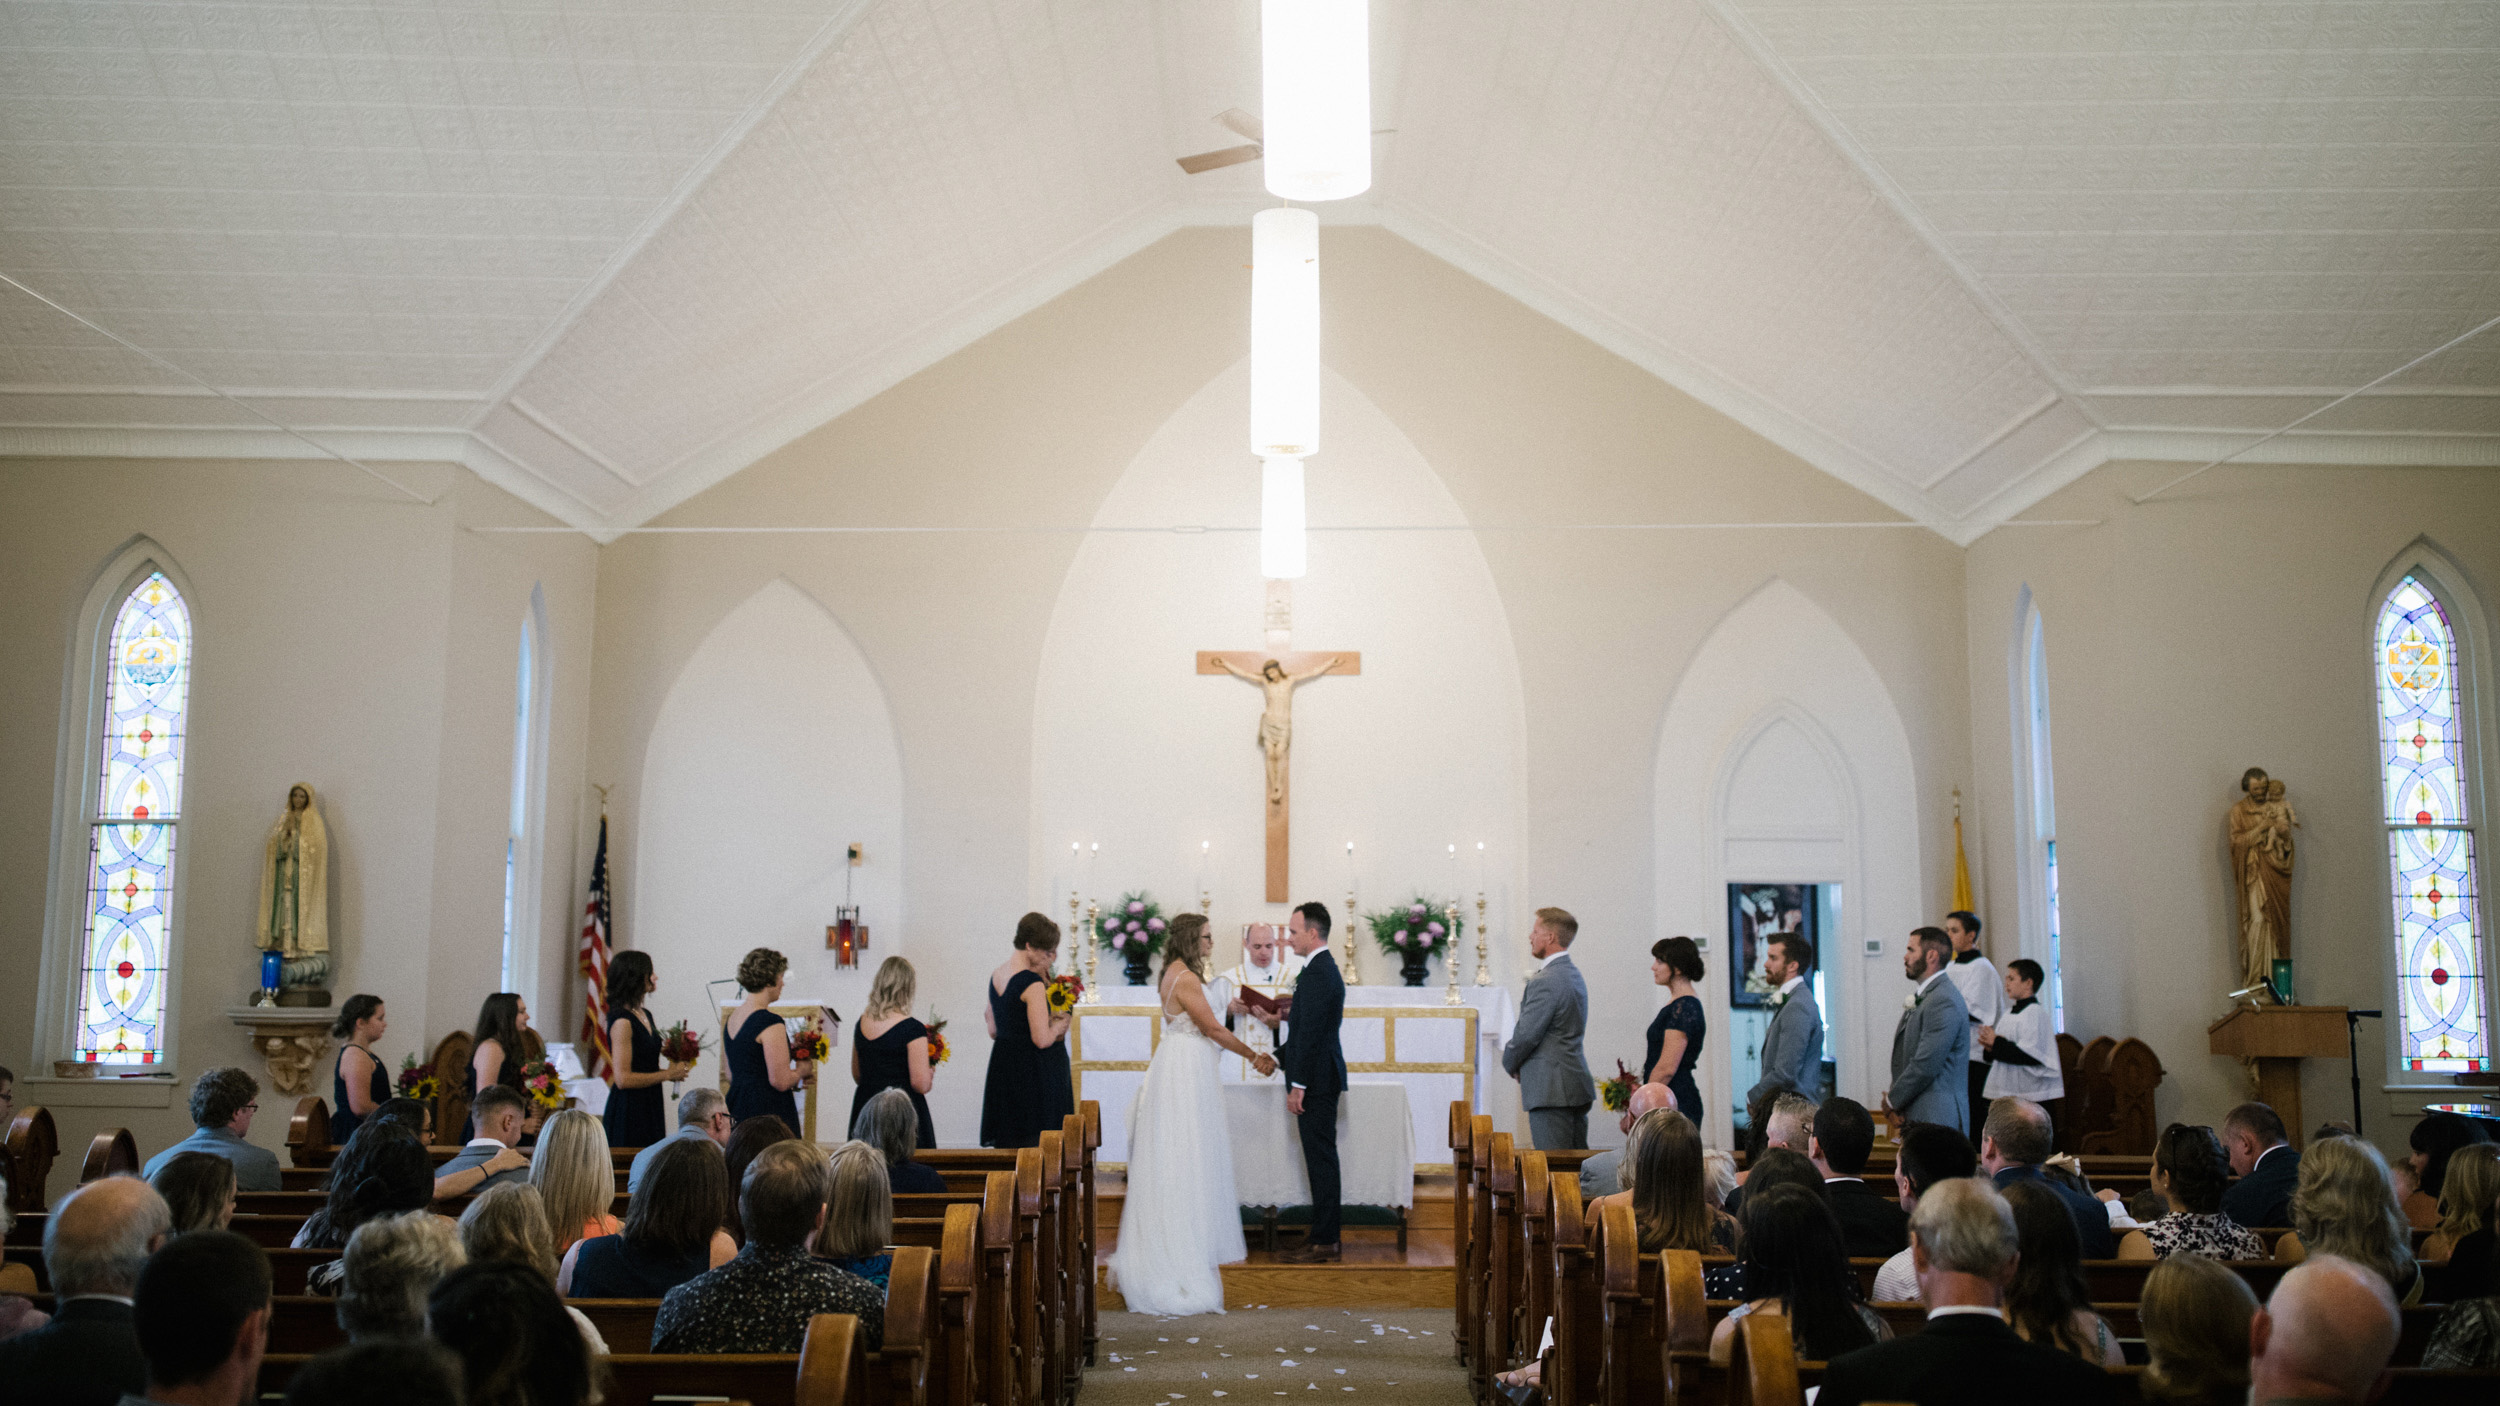 alec_vanderboom_john_micahel_lucy_kansas_city_wedding_photographer-0027.jpg